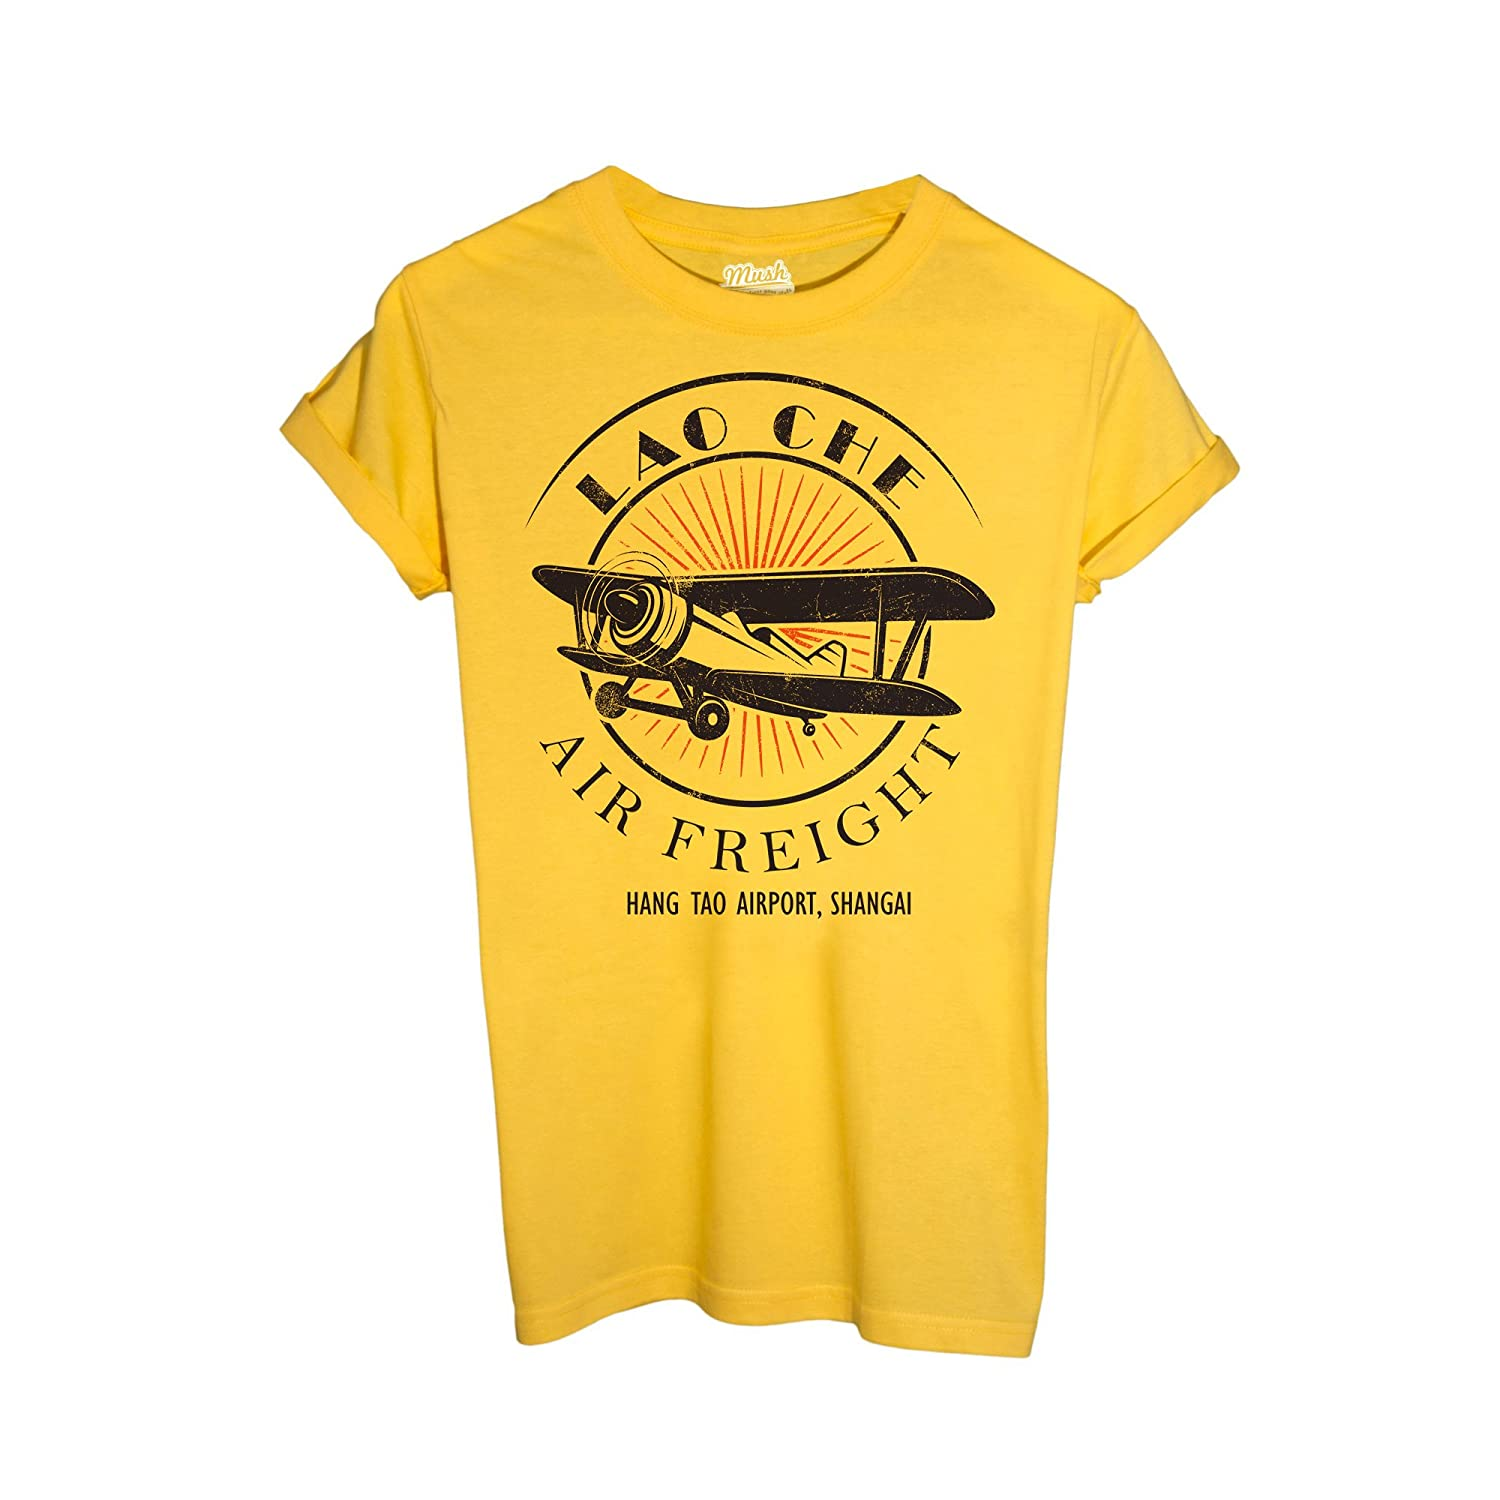 MUSH T-Shirt Lao Che Air Freight- Indiana Jones - Film by Dress Your Style mushT-IT-2638-parent